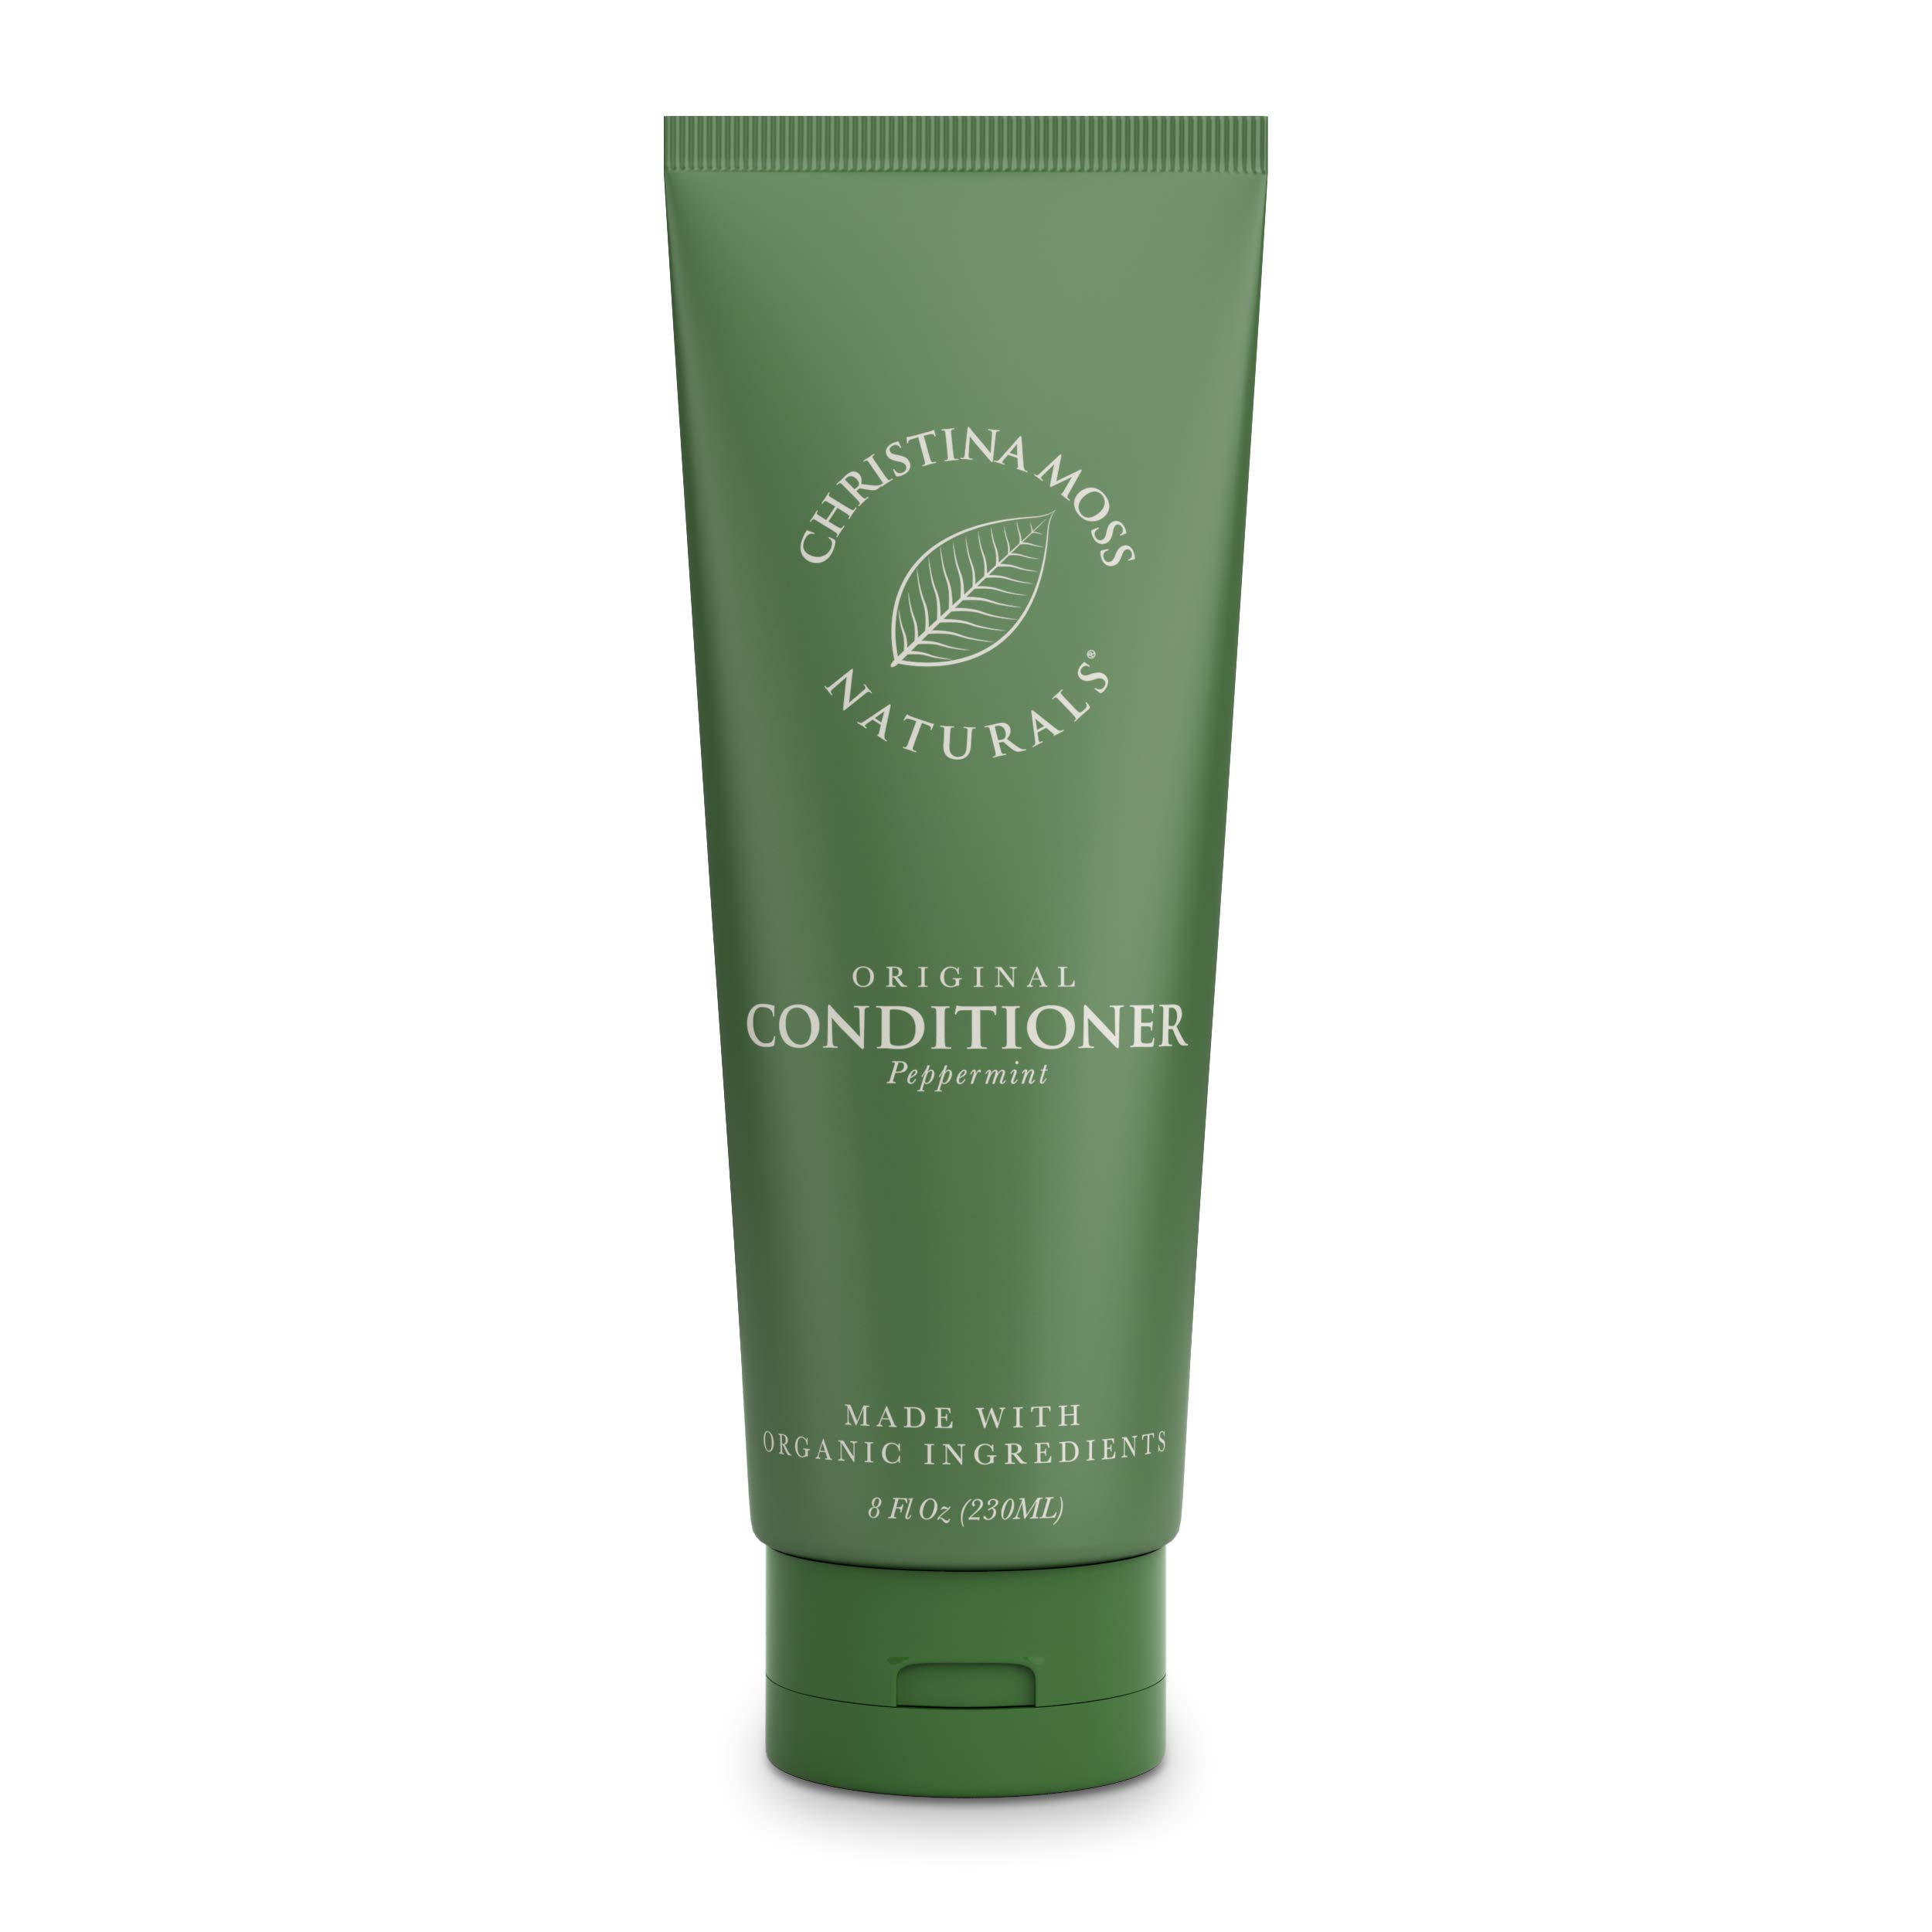 Hair Conditioner, With Organic Aloe – Nourish & Sooth All Hair Types - Dry, Oily, Curly, Fine - Daily & Leave In For Women & Men, Sulfate Free, Non Toxic, No Harmful Chemicals. Christina Moss Naturals